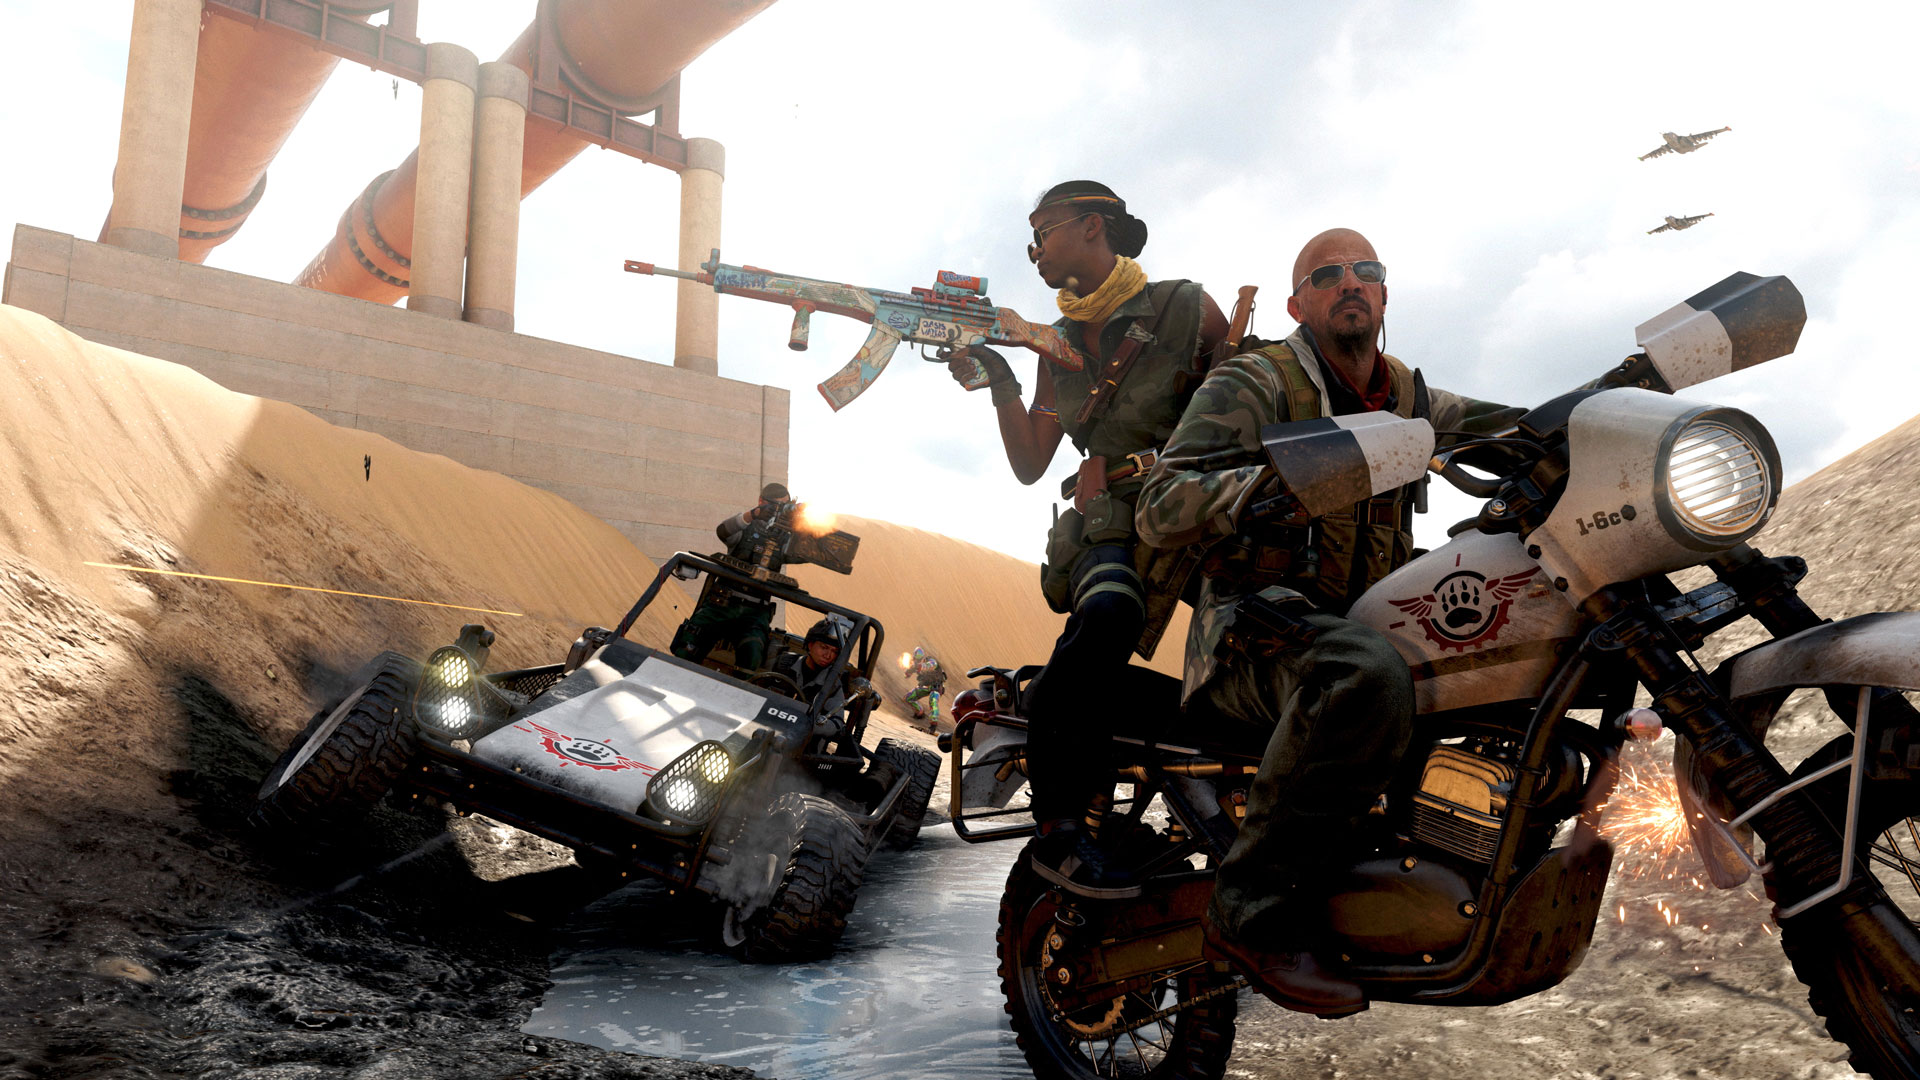 Call of Duty's season 5 release date has been delayed by a day